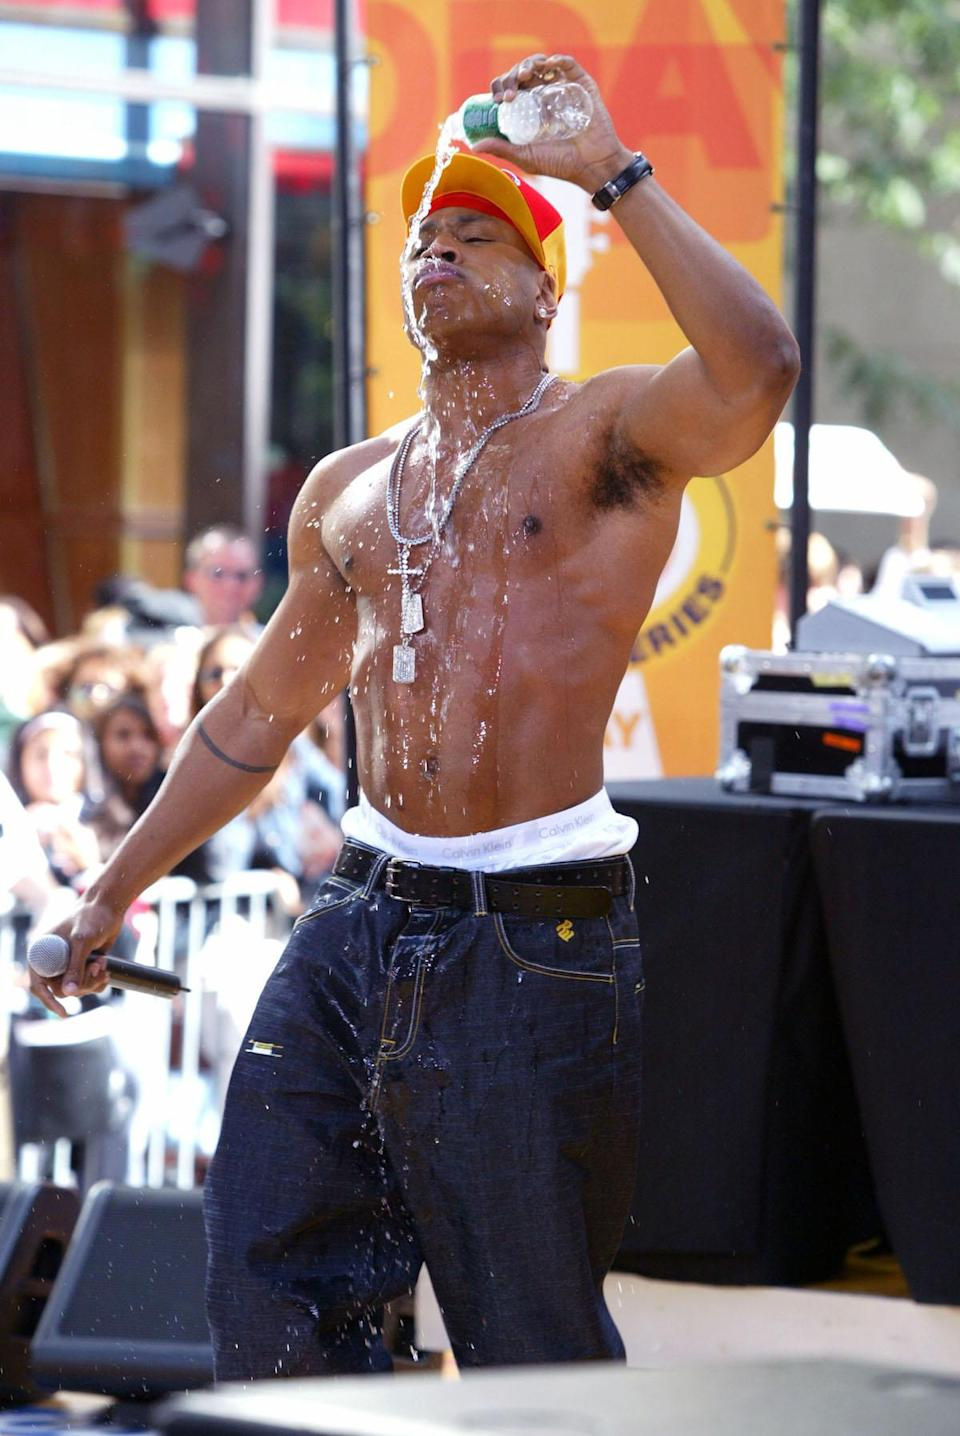 50 photos of a shirtless LL Cool J on his 50th birthday